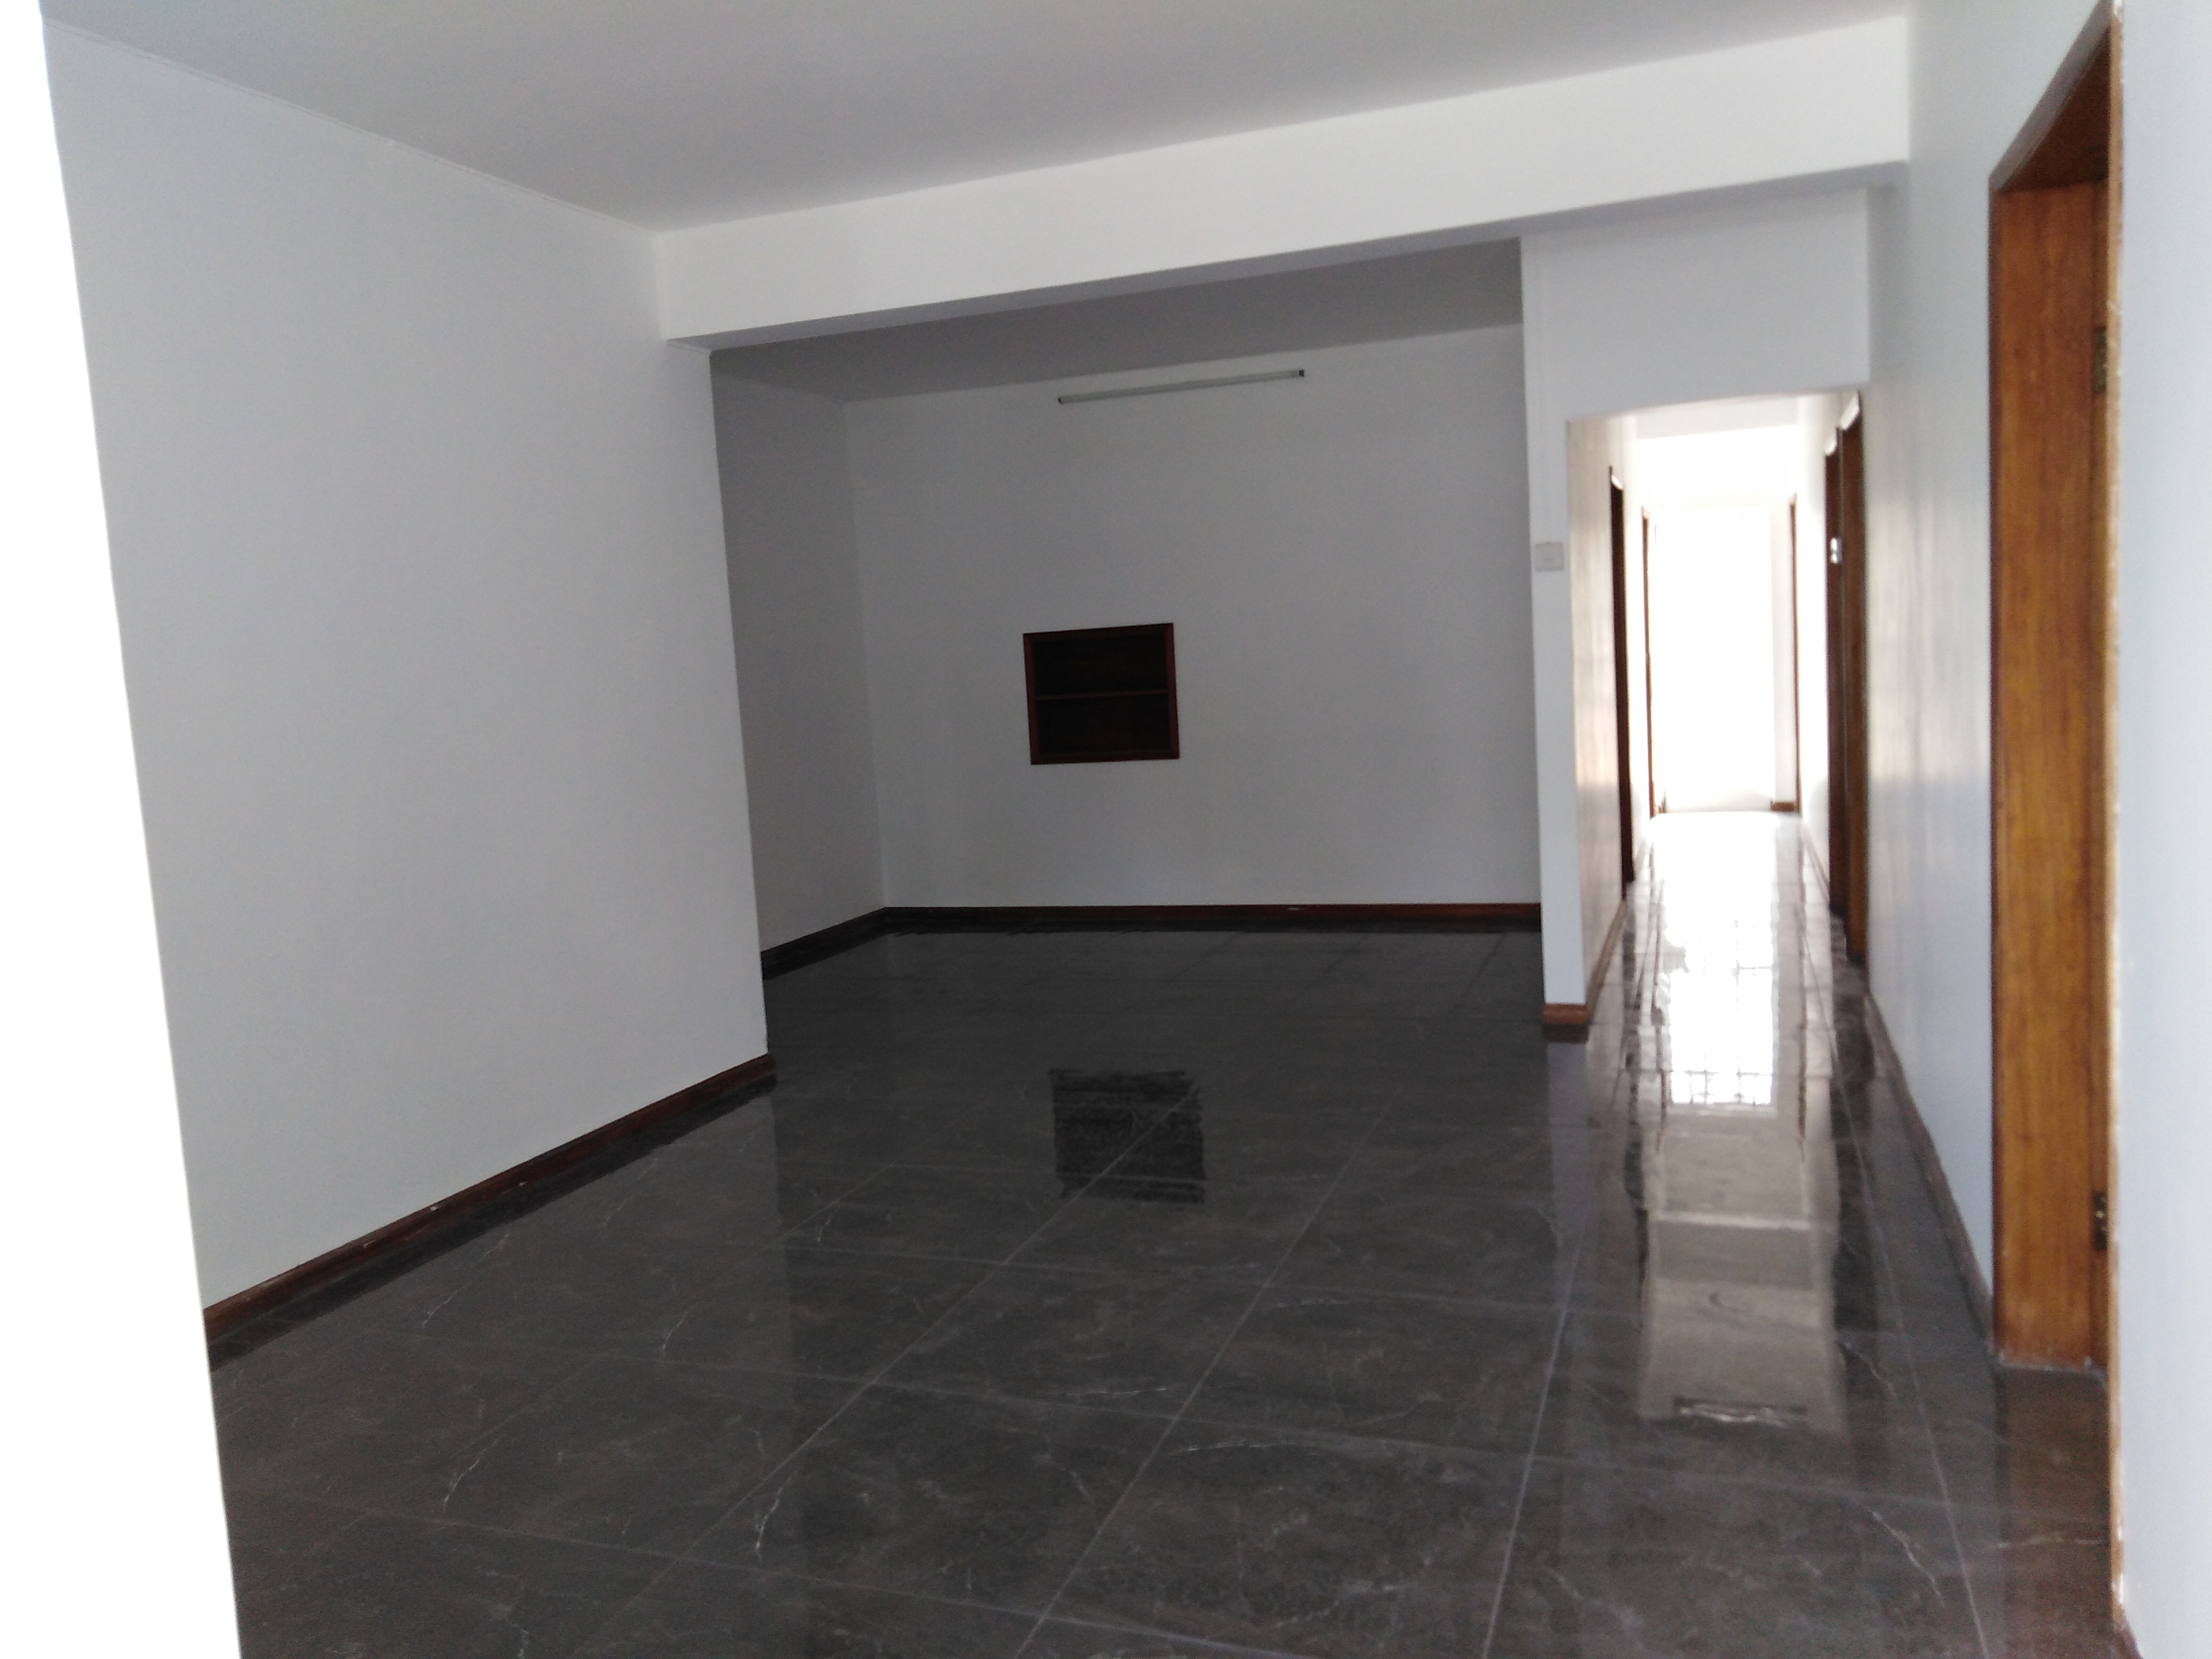 Office of 104m² for Rent - Port louis Centre